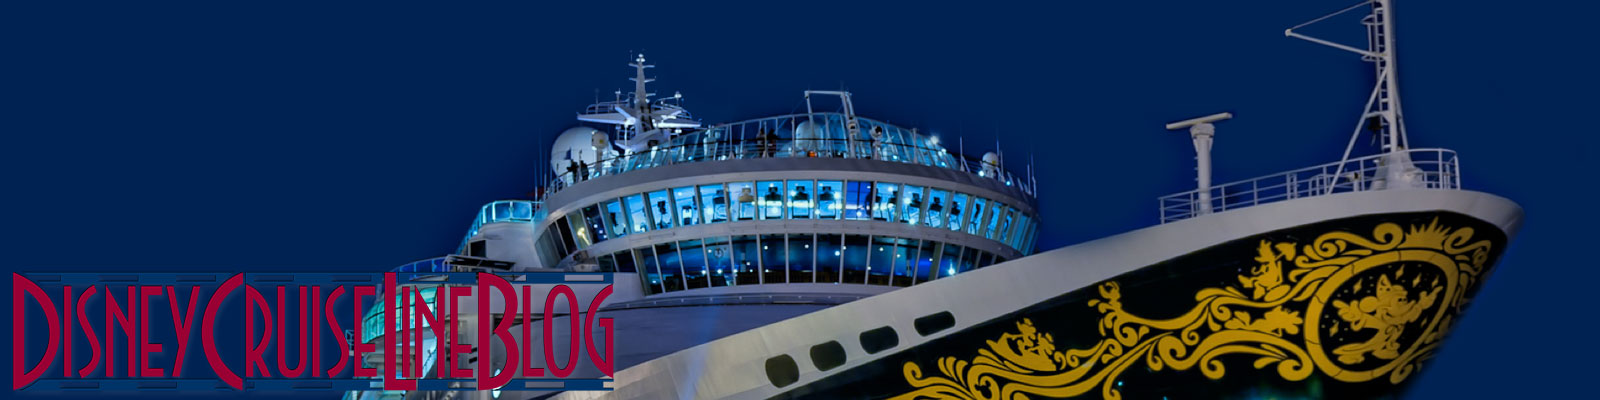 The Disney Cruise Line Blog